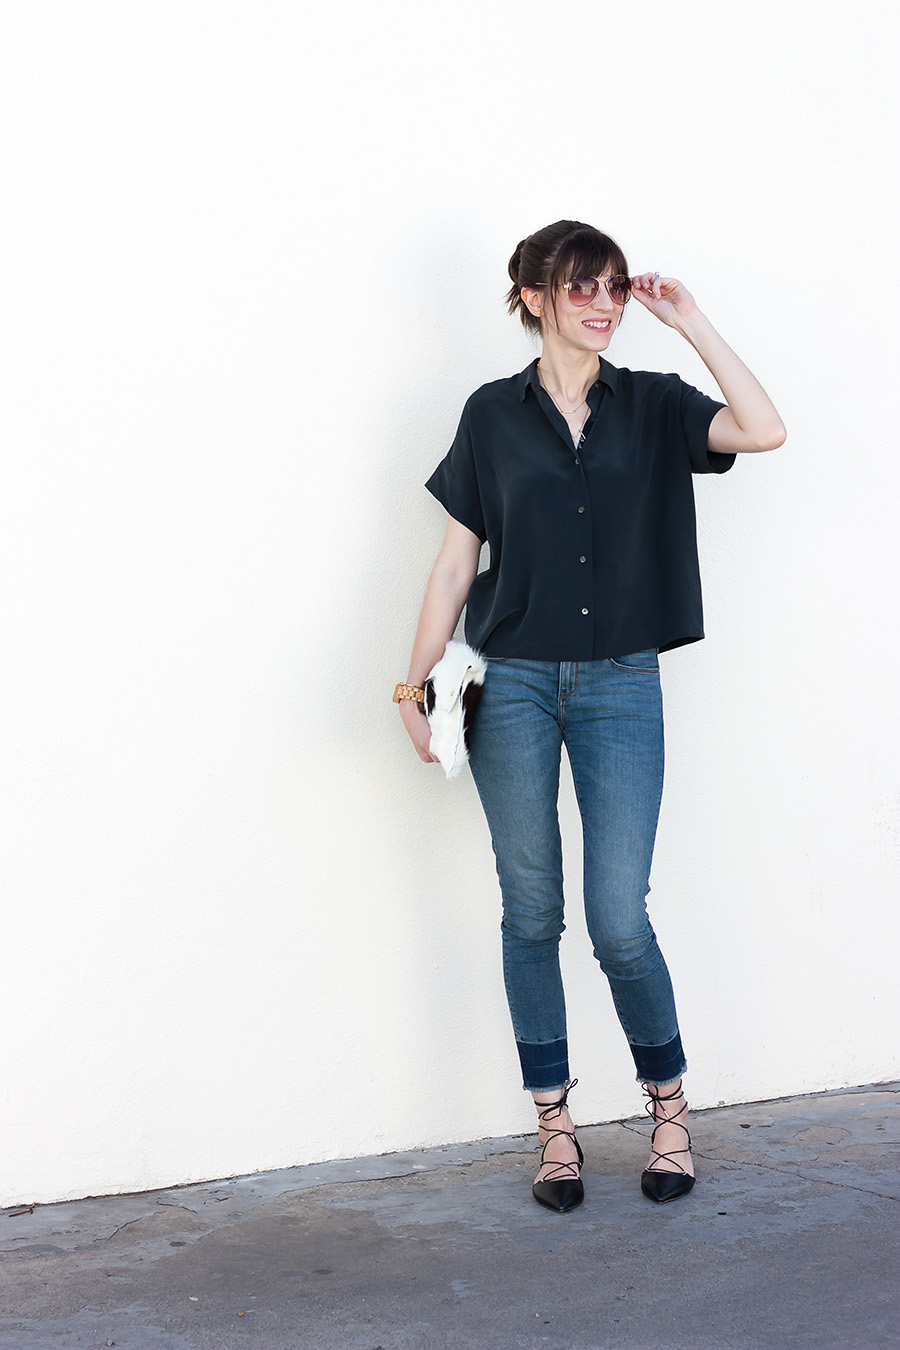 Everlane Square Silk Shirt, Black Lace Up Flats